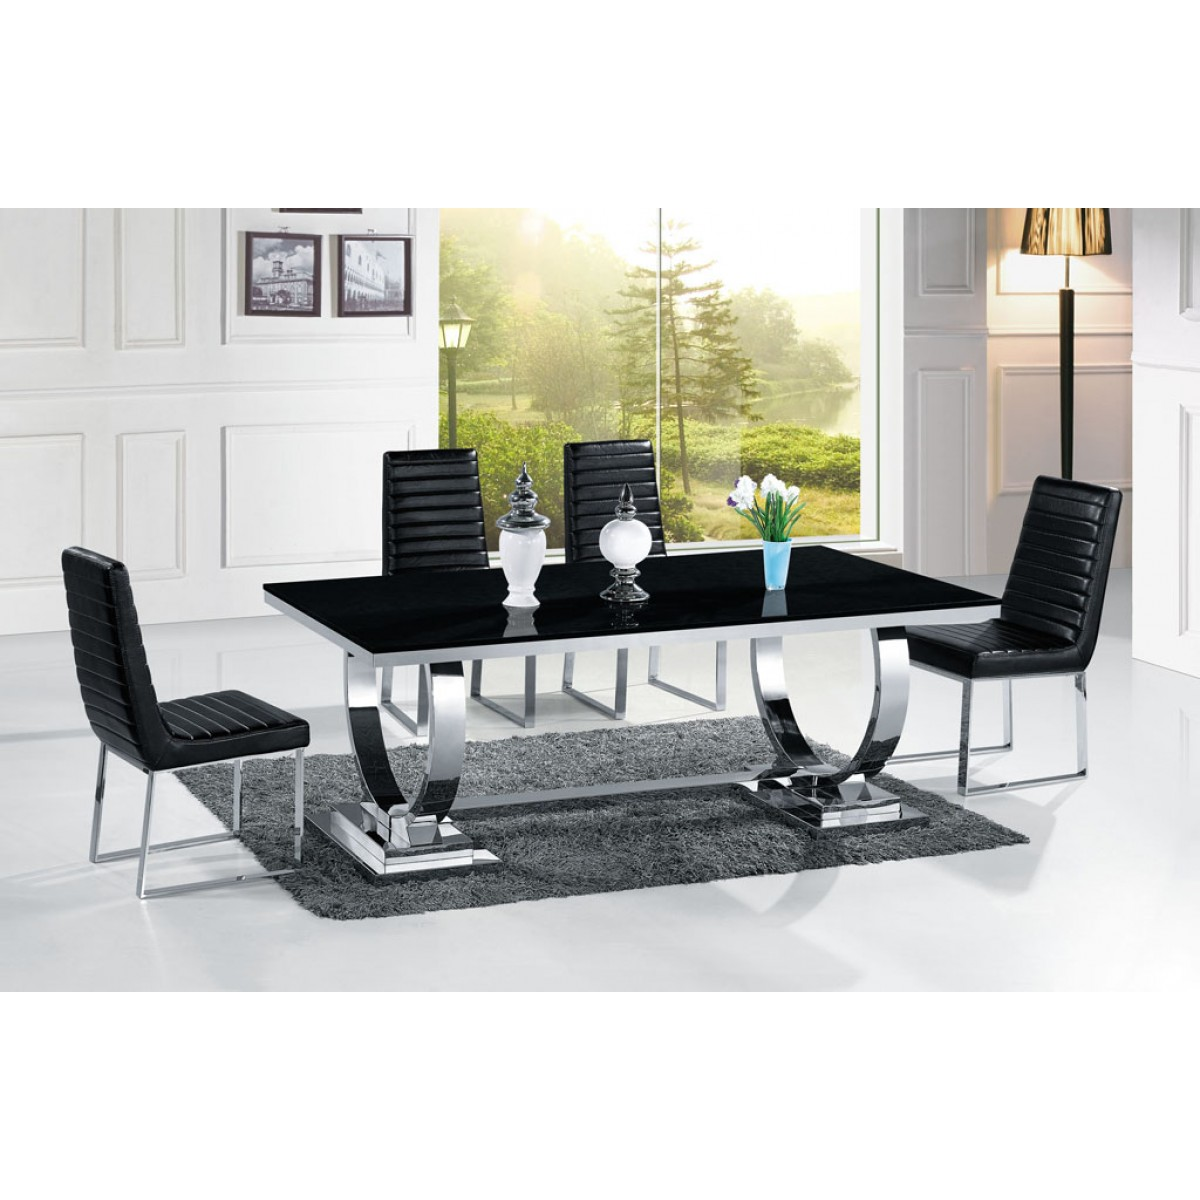 Table de salle manger en inox venezia mabre ou verre for Table salle a manger design xxl